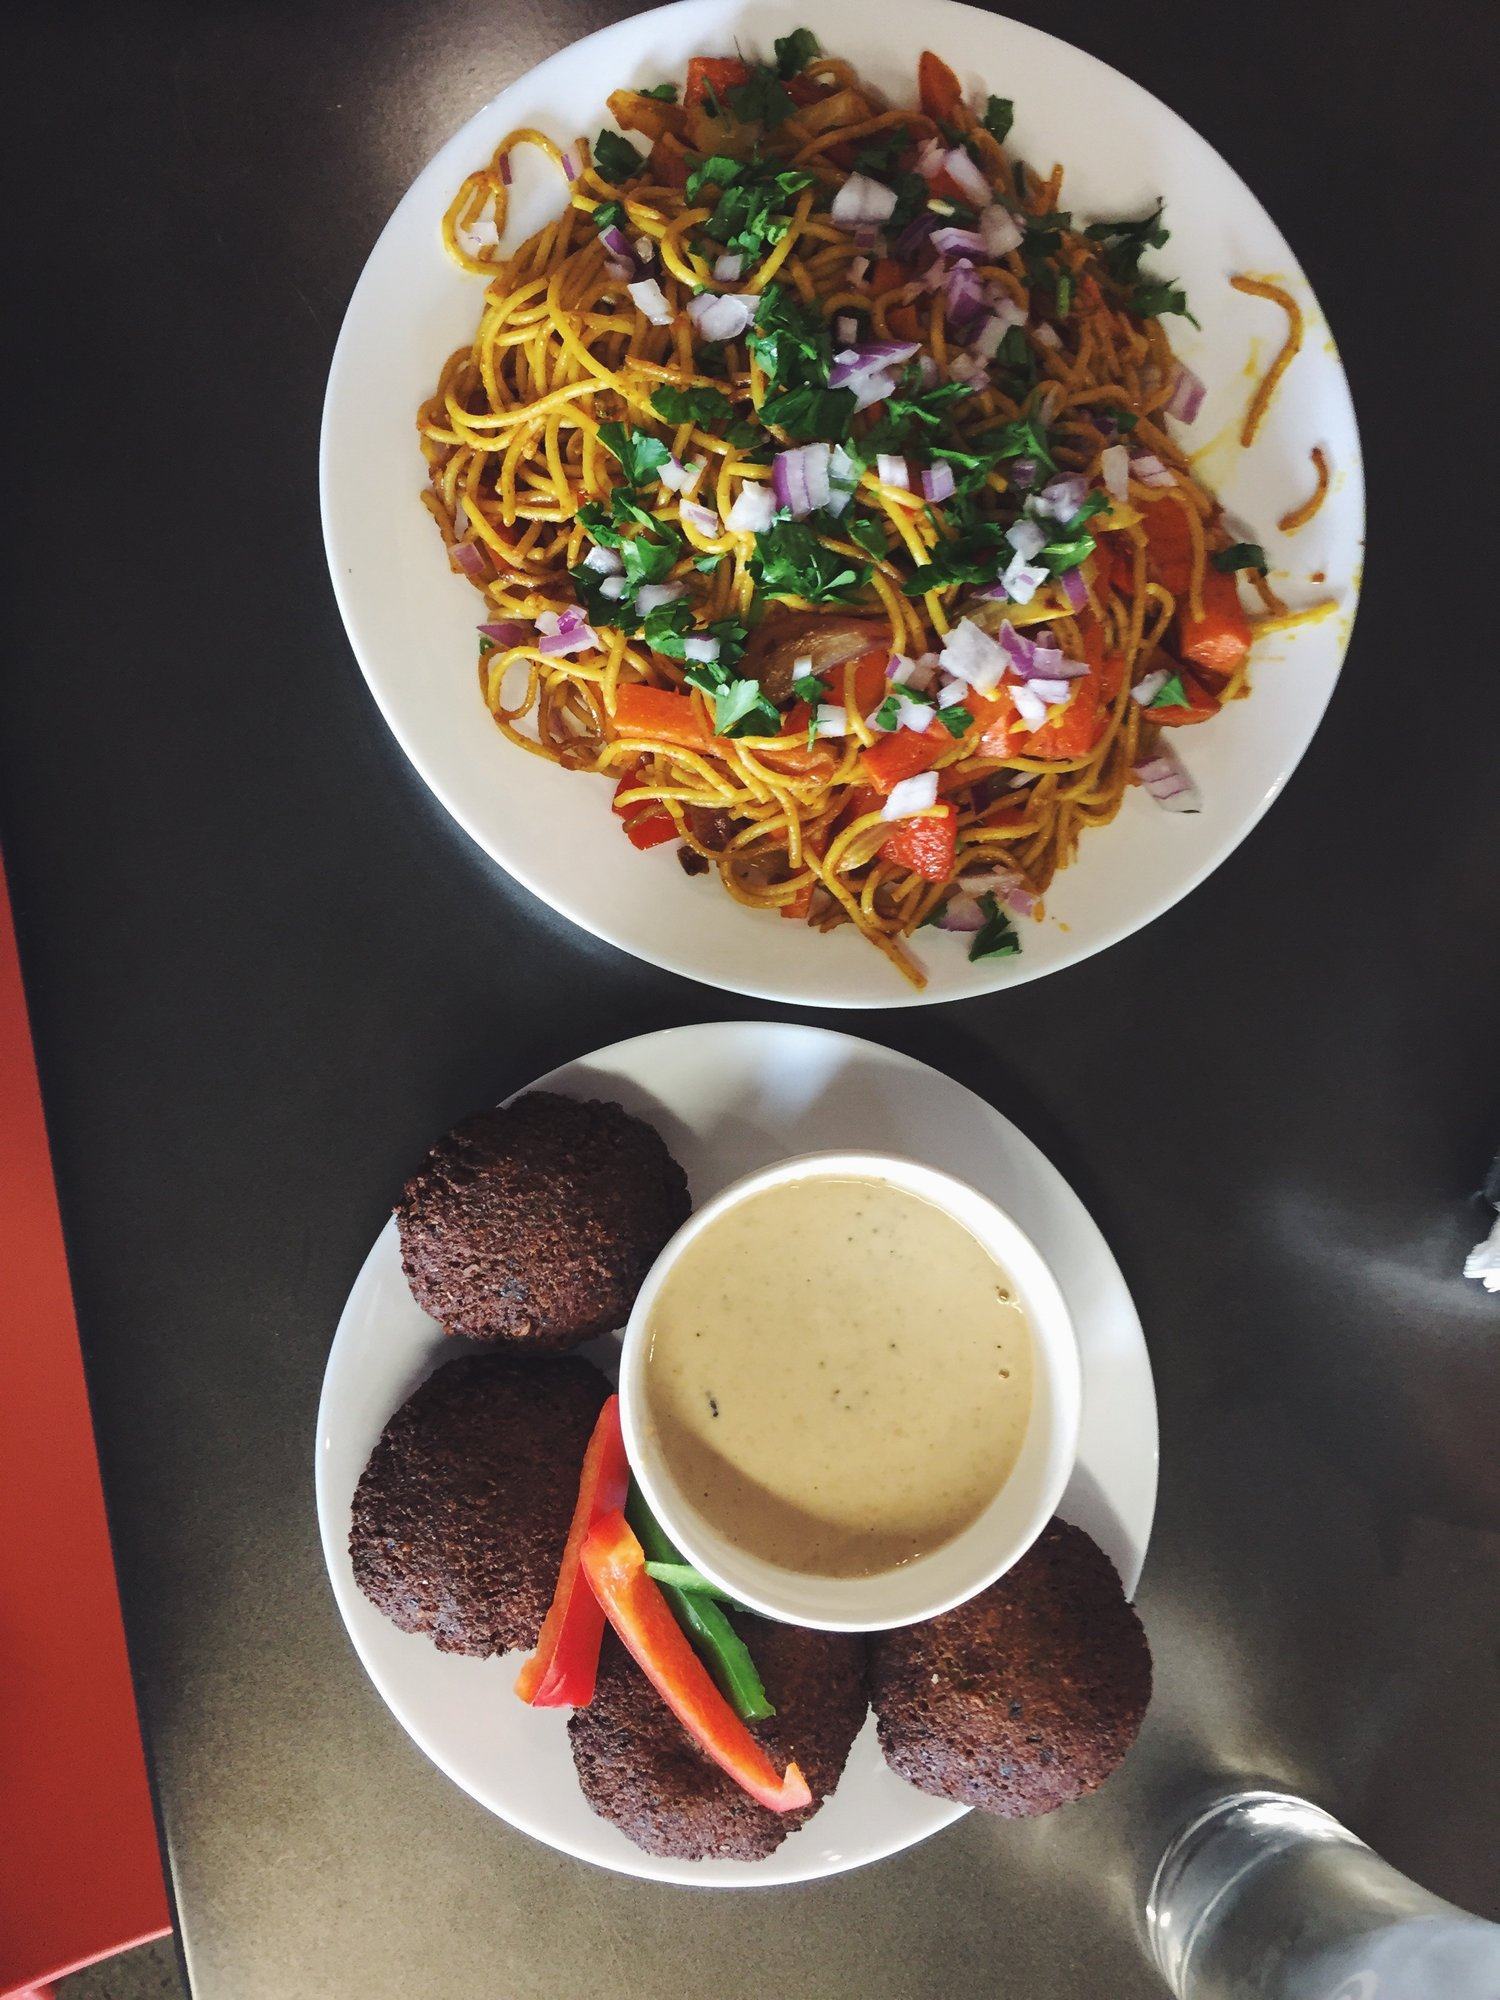 Chow mein and (more!) falafel